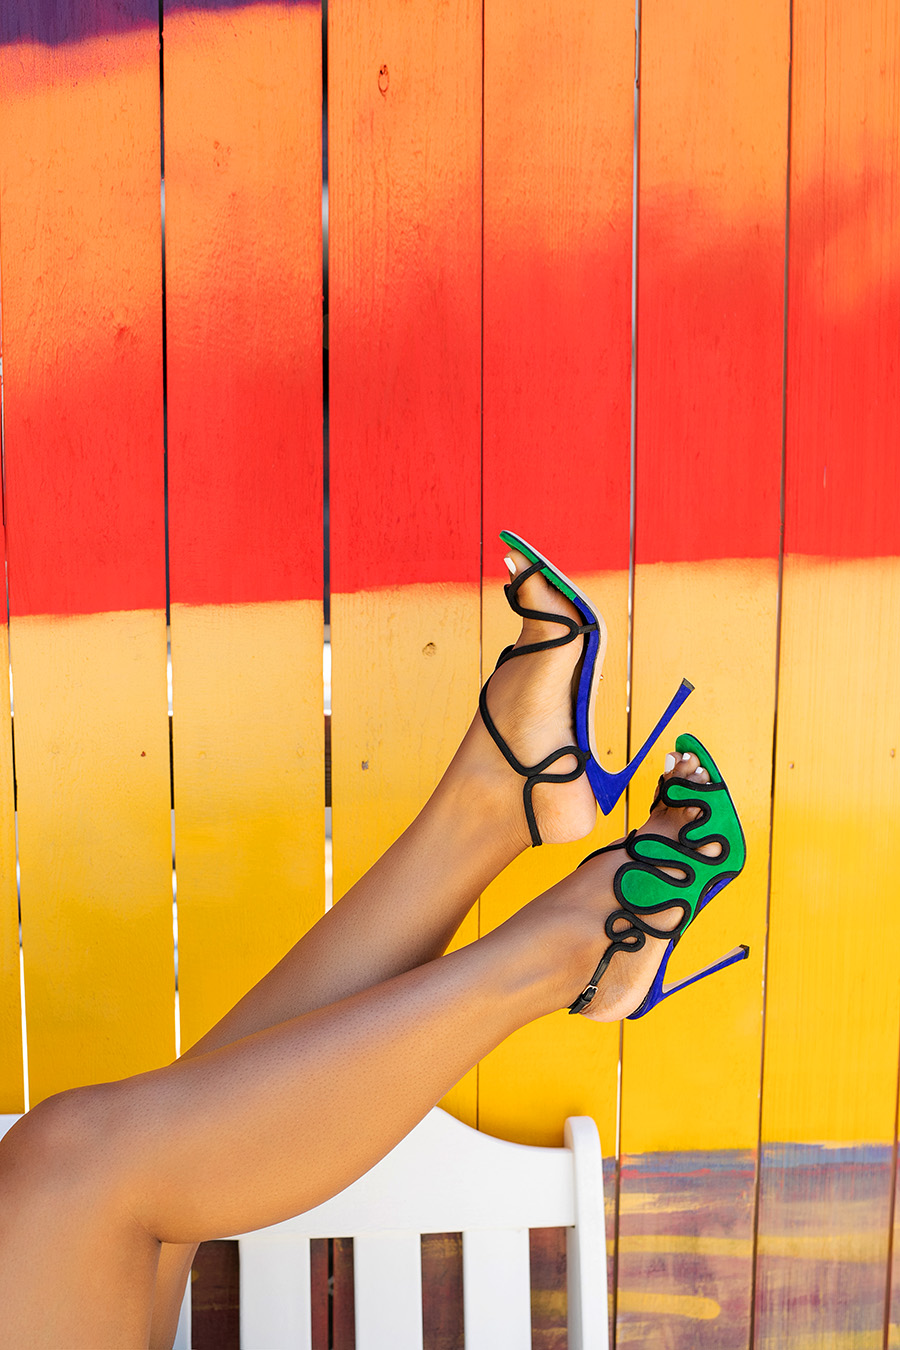 blue and green Sergio Rossi lagoon Suede Heels again a bright wall